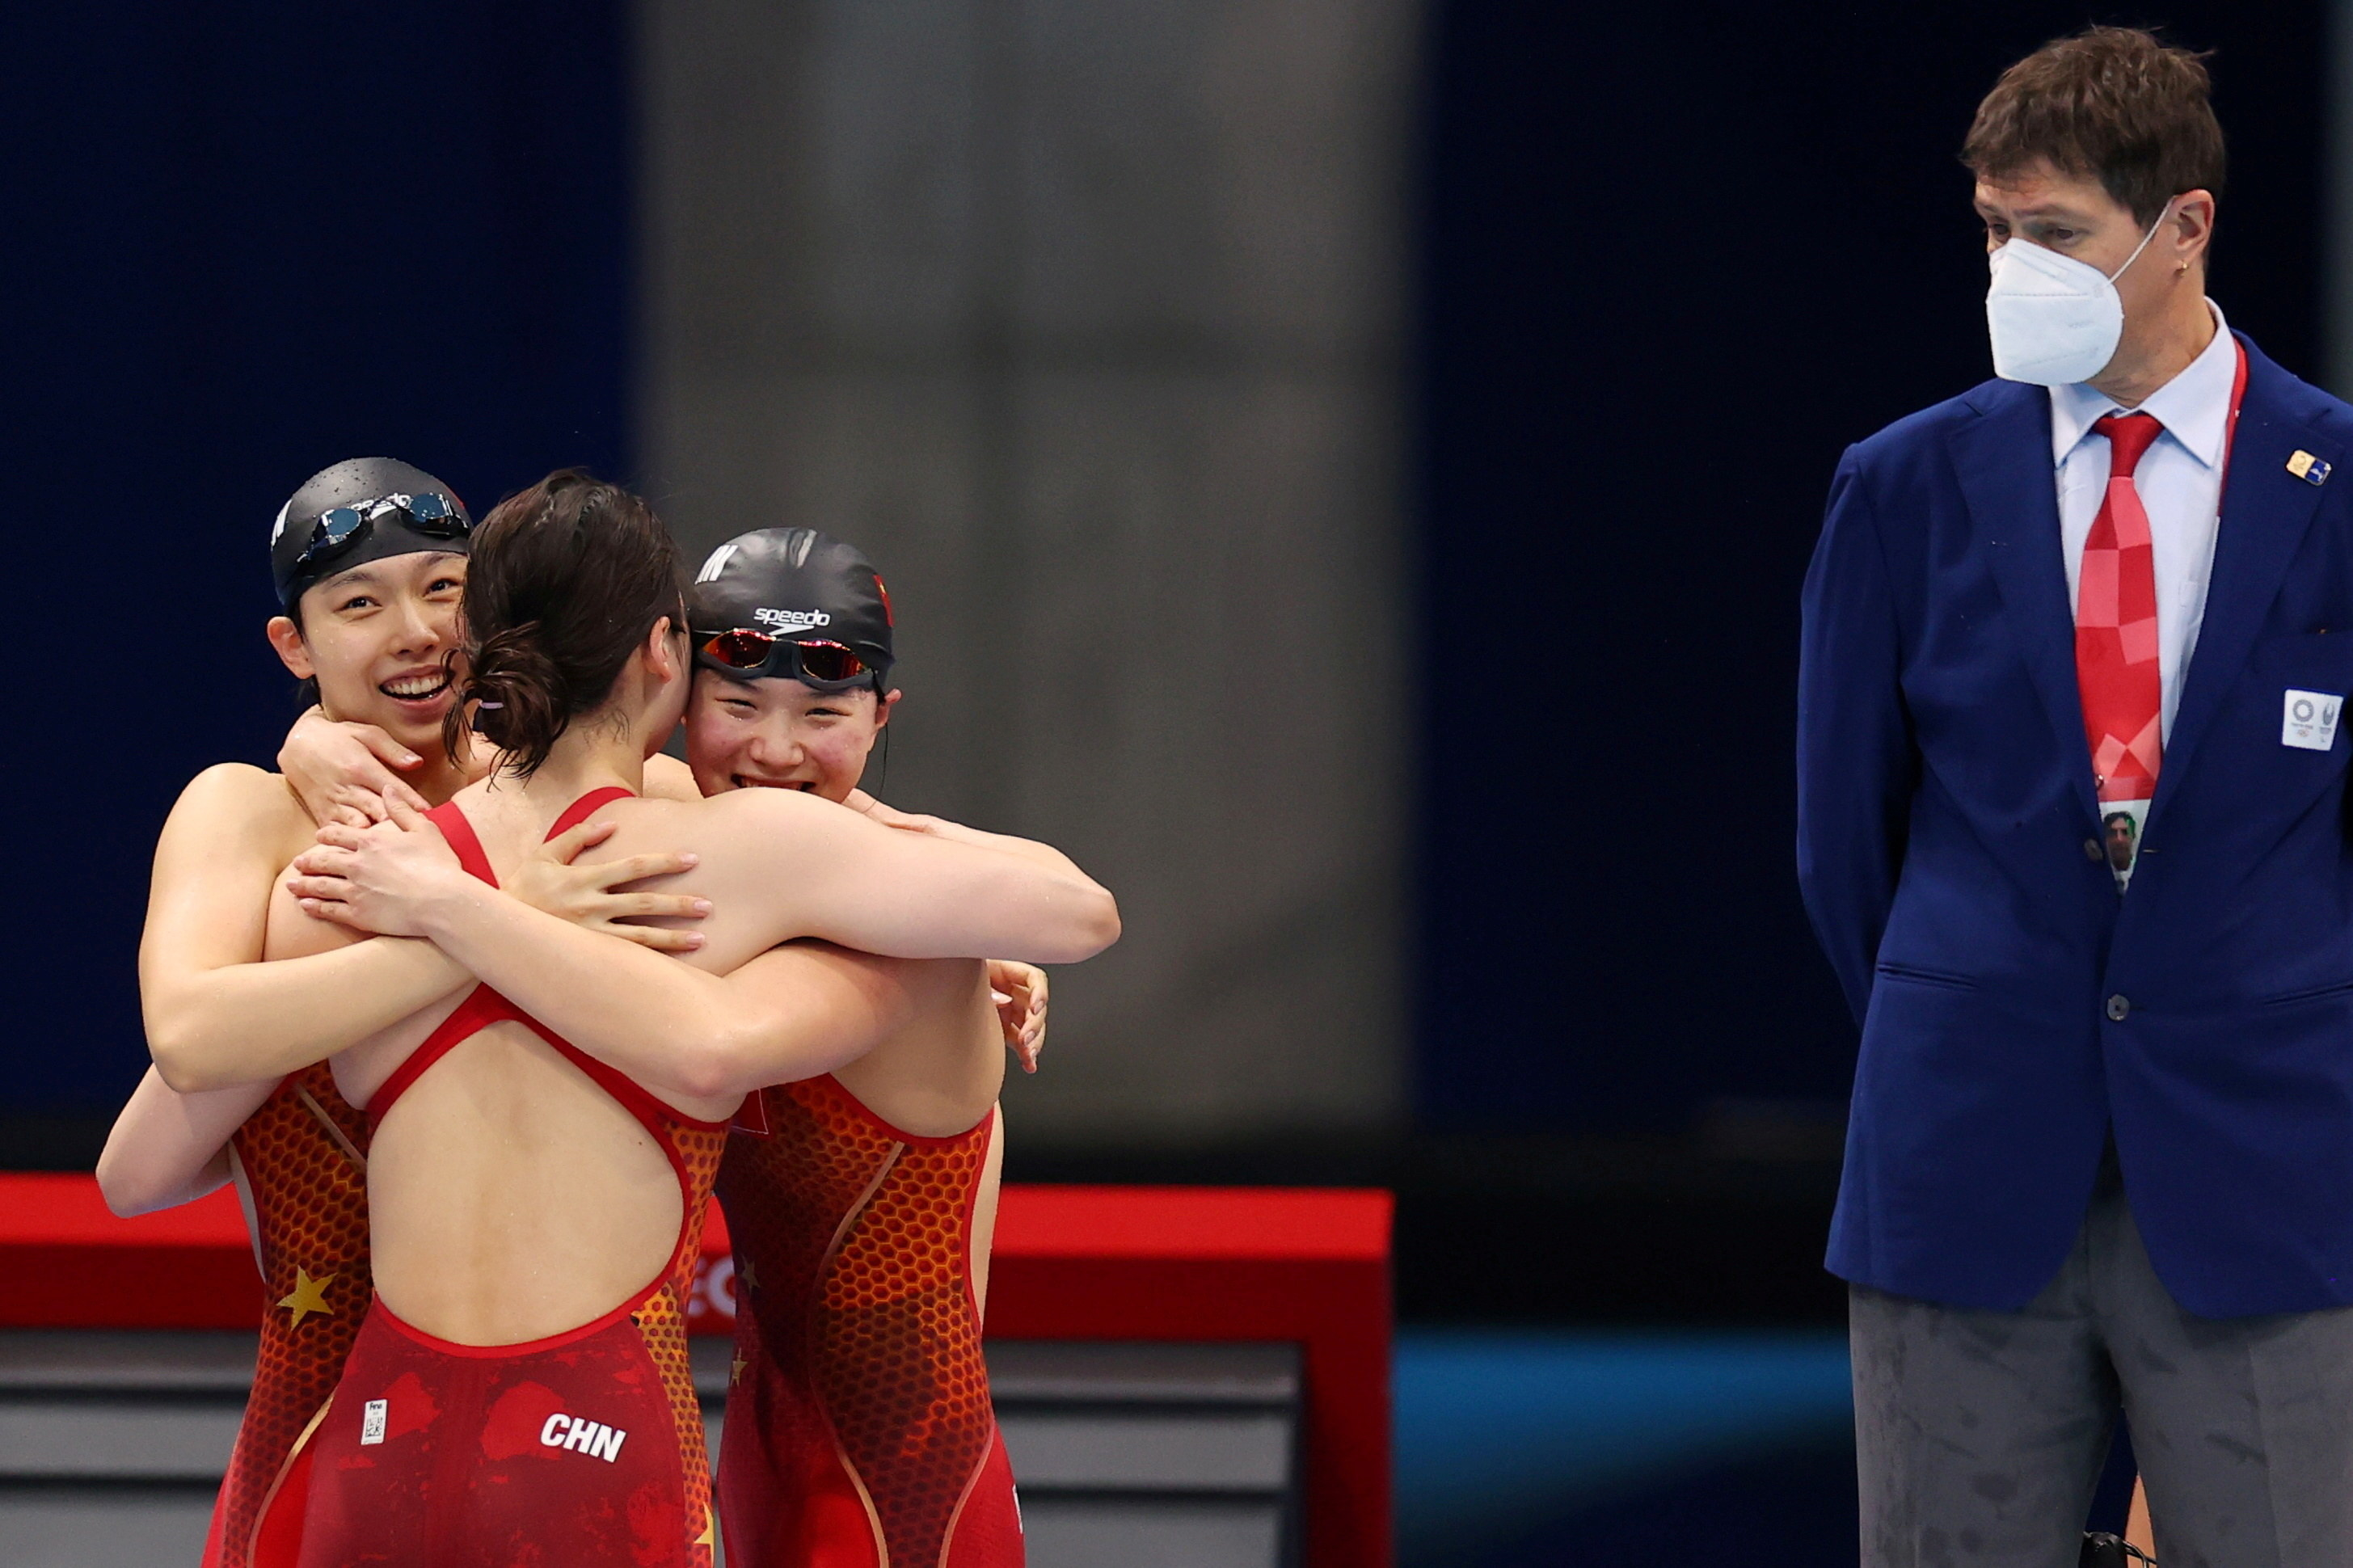 Olympic swimmers share a hug after winning a gold medal at the Olympics